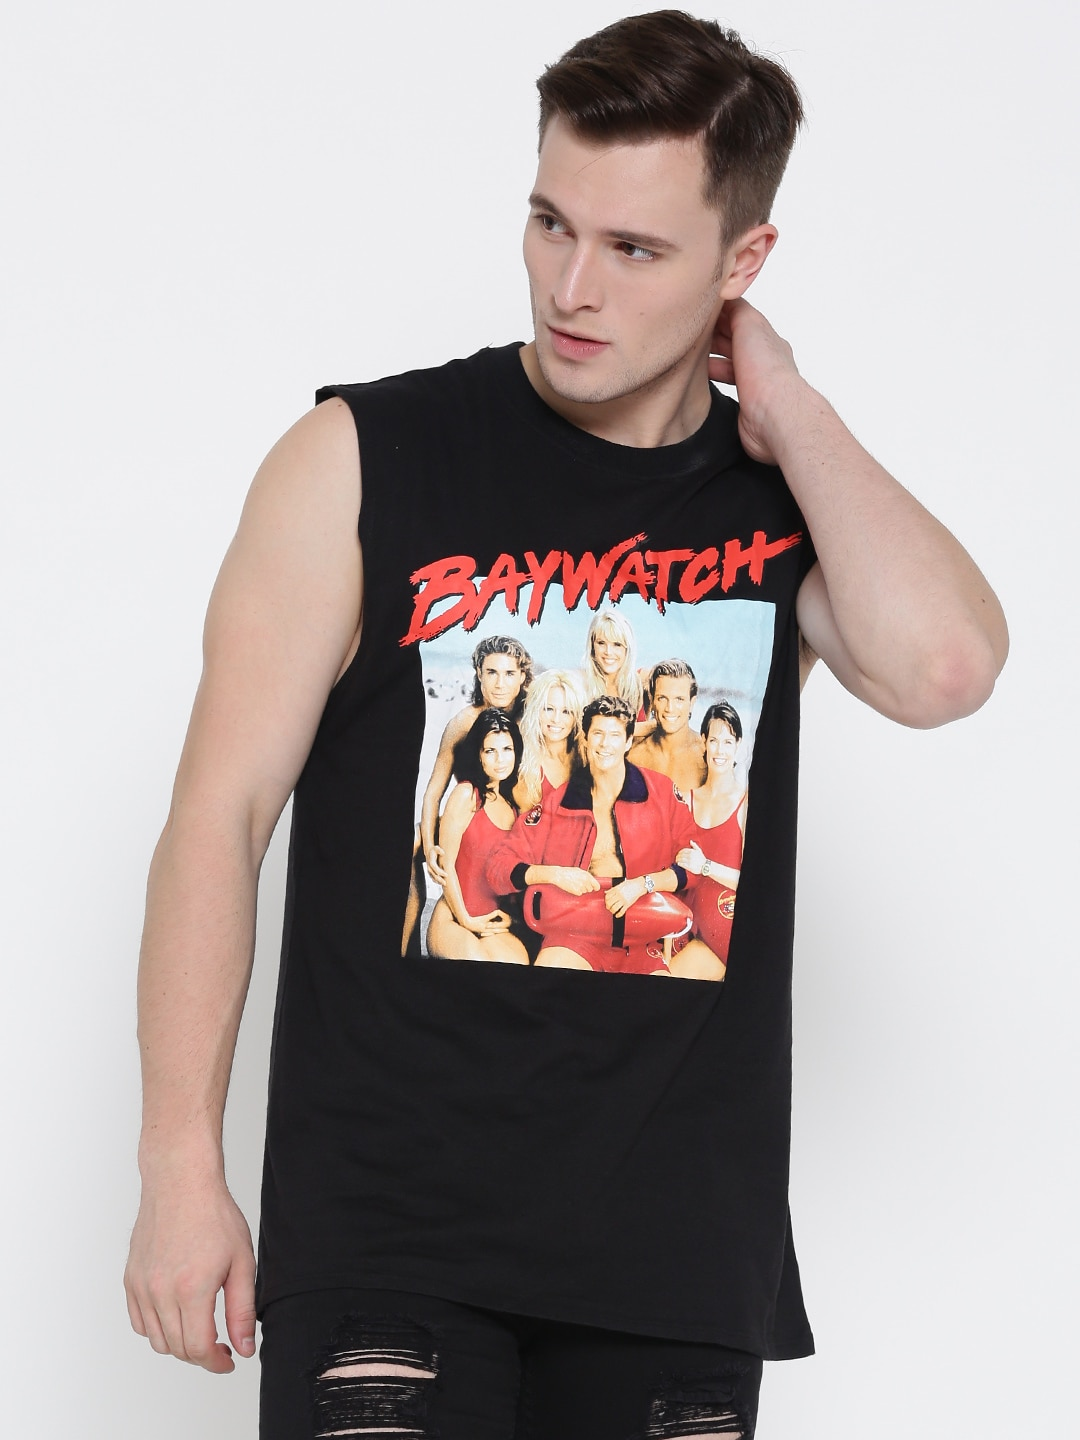 FOREVER 21 Men Black Baywatch Print Round Neck Sleeveless T-shirt image